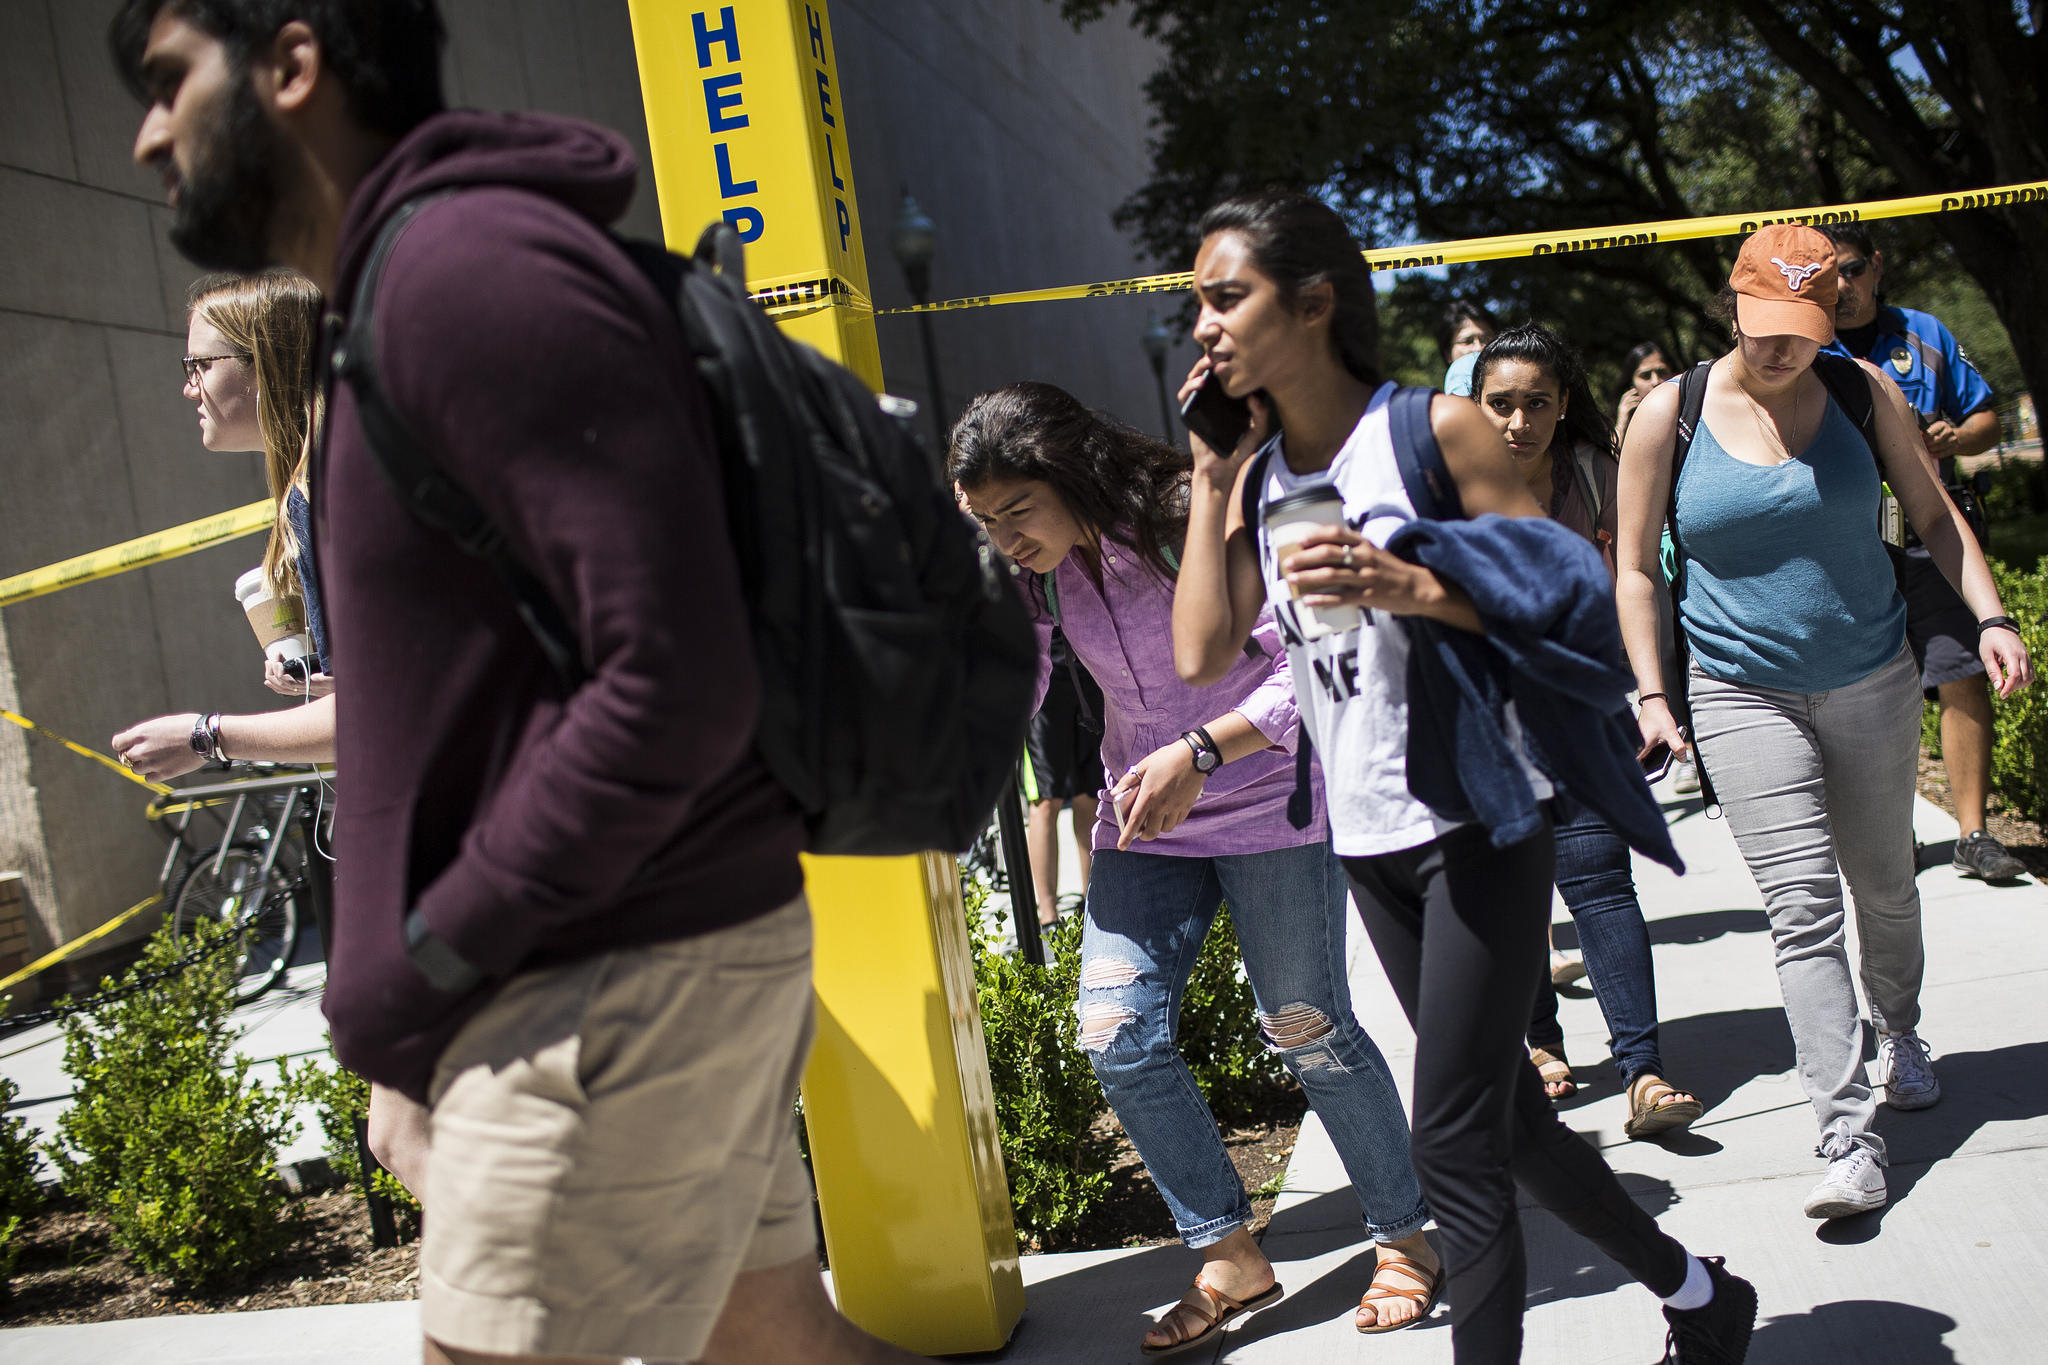 Student Calmly Stabs 4, Killing 1, At University Of Texas